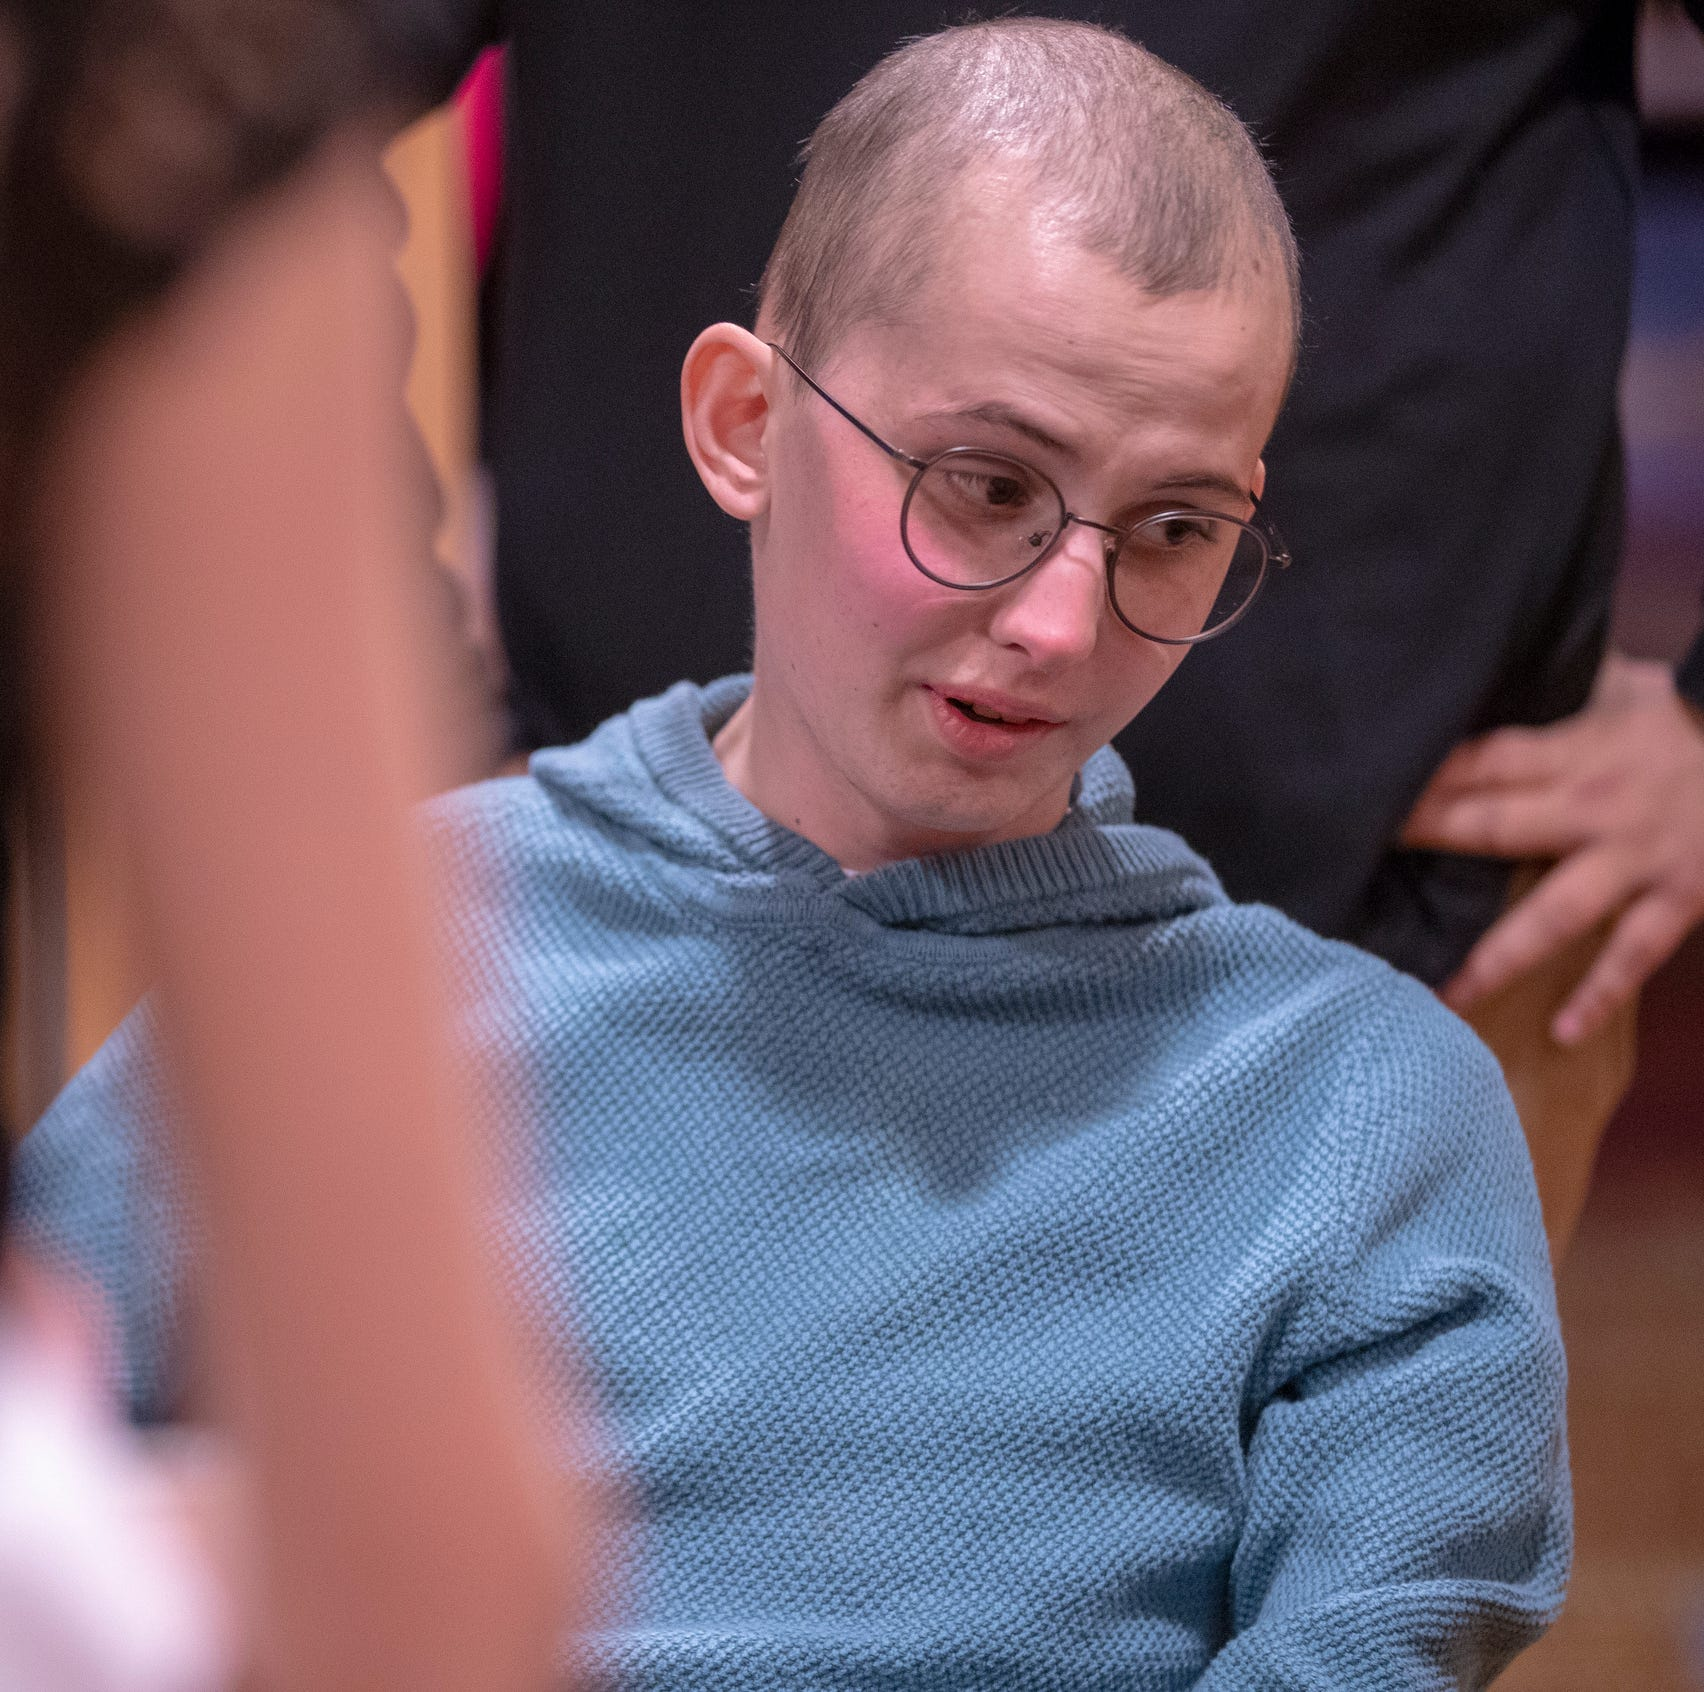 Tyler Trent the super cancer patient: He donated his tumor for research